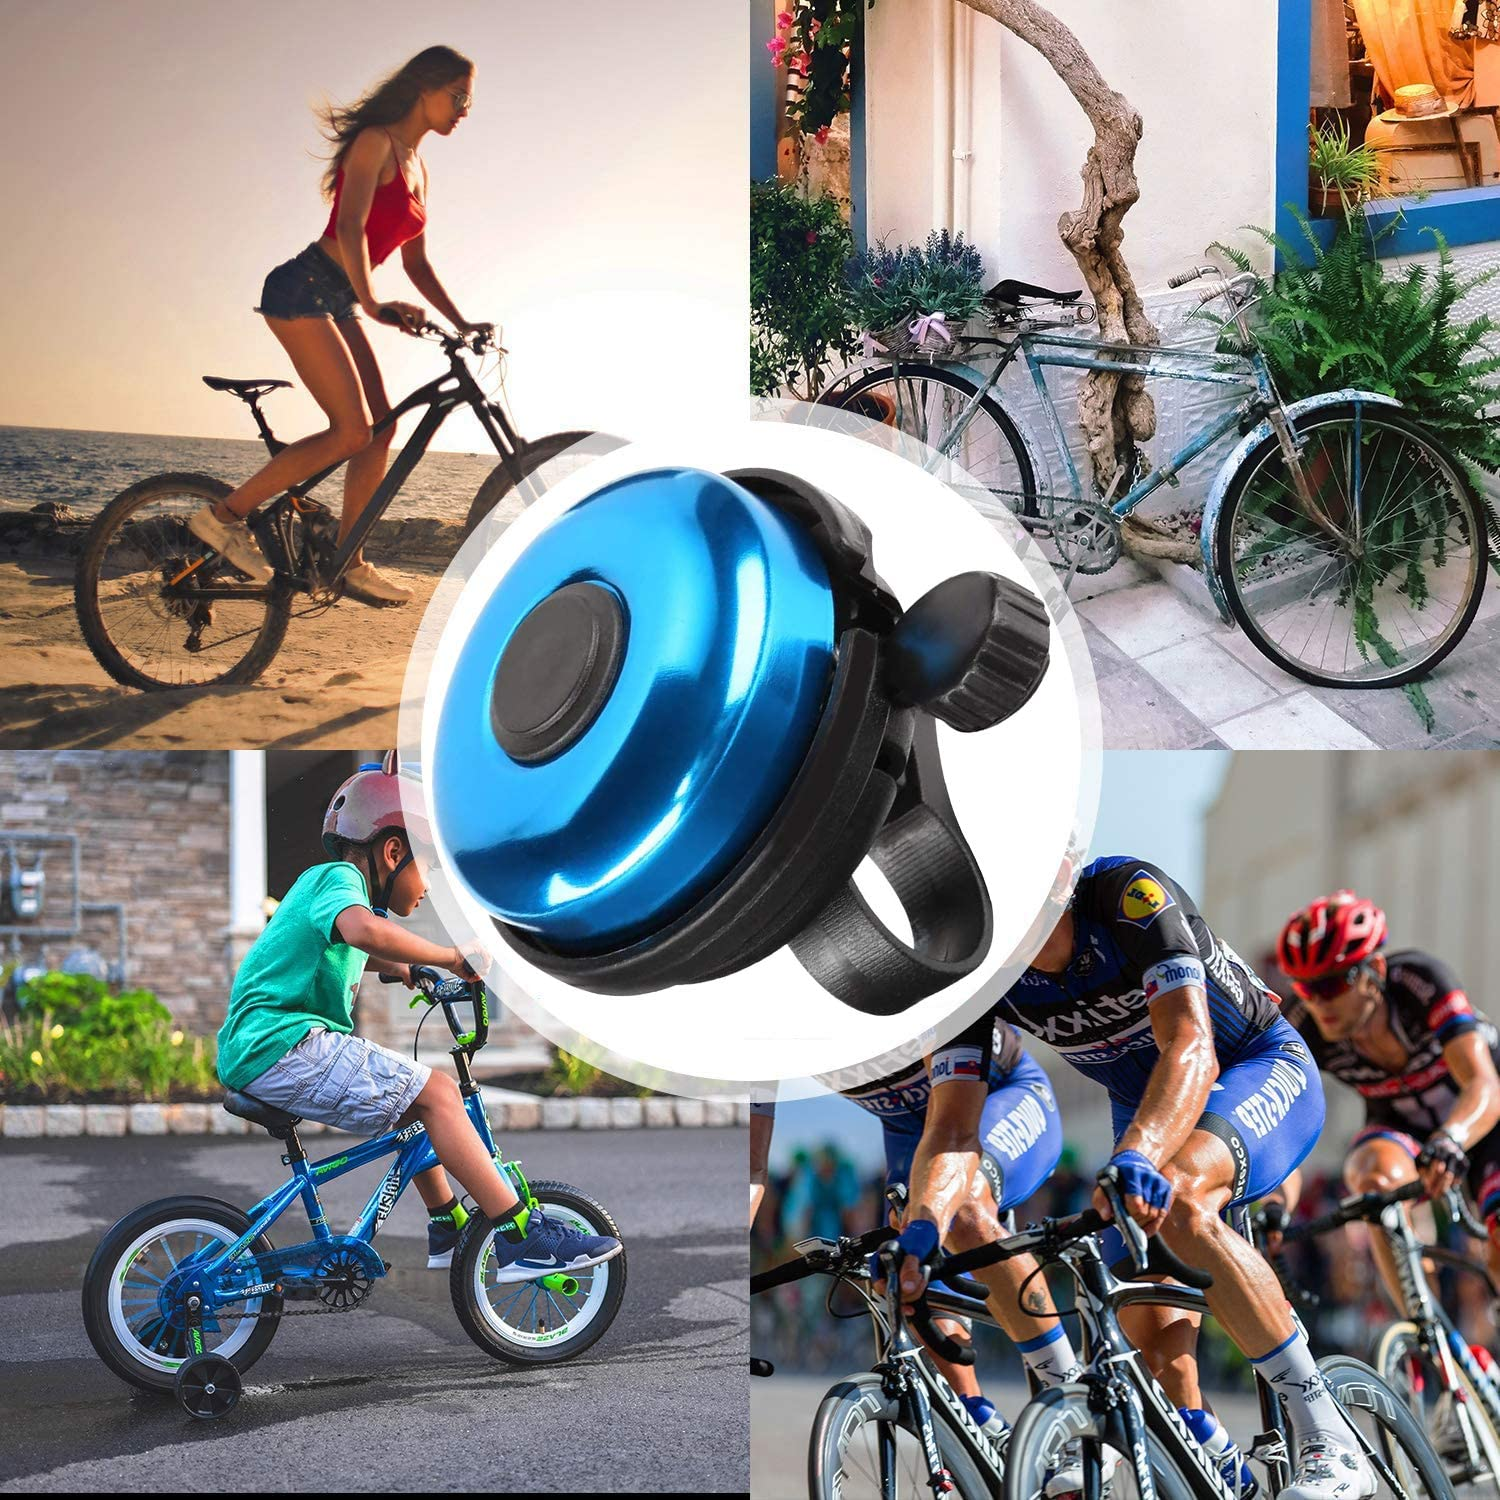 Classic Bicycle Bells Musment Bicycle Bells Aluminum Alloy Bicycle Bells Bicycle Bells with Loud and Clear Sound for Adults and Children